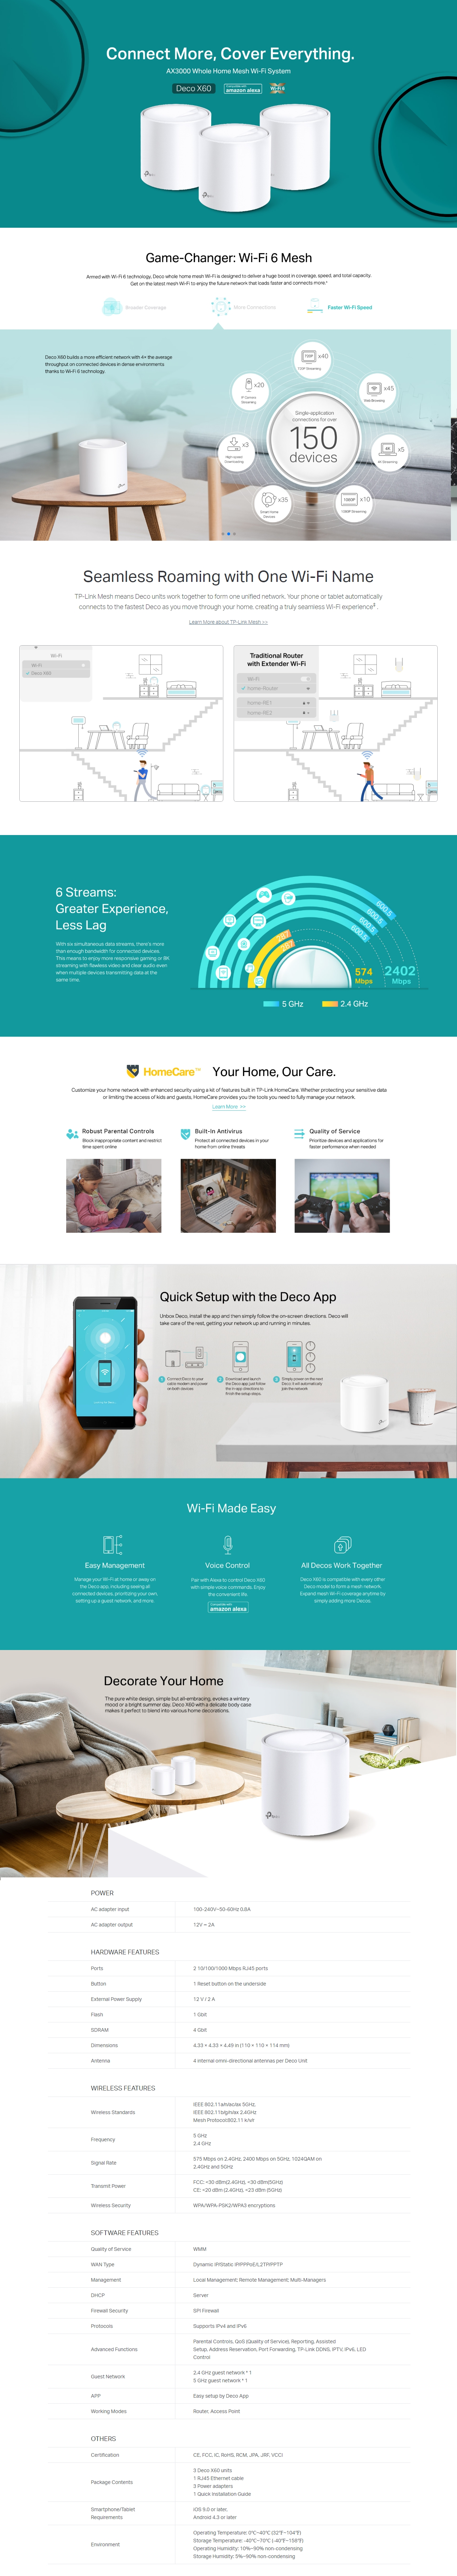 A large marketing image providing additional information about the product TP-LINK Deco X60 AX3000 Home Mesh Wireless System - Additional alt info not provided